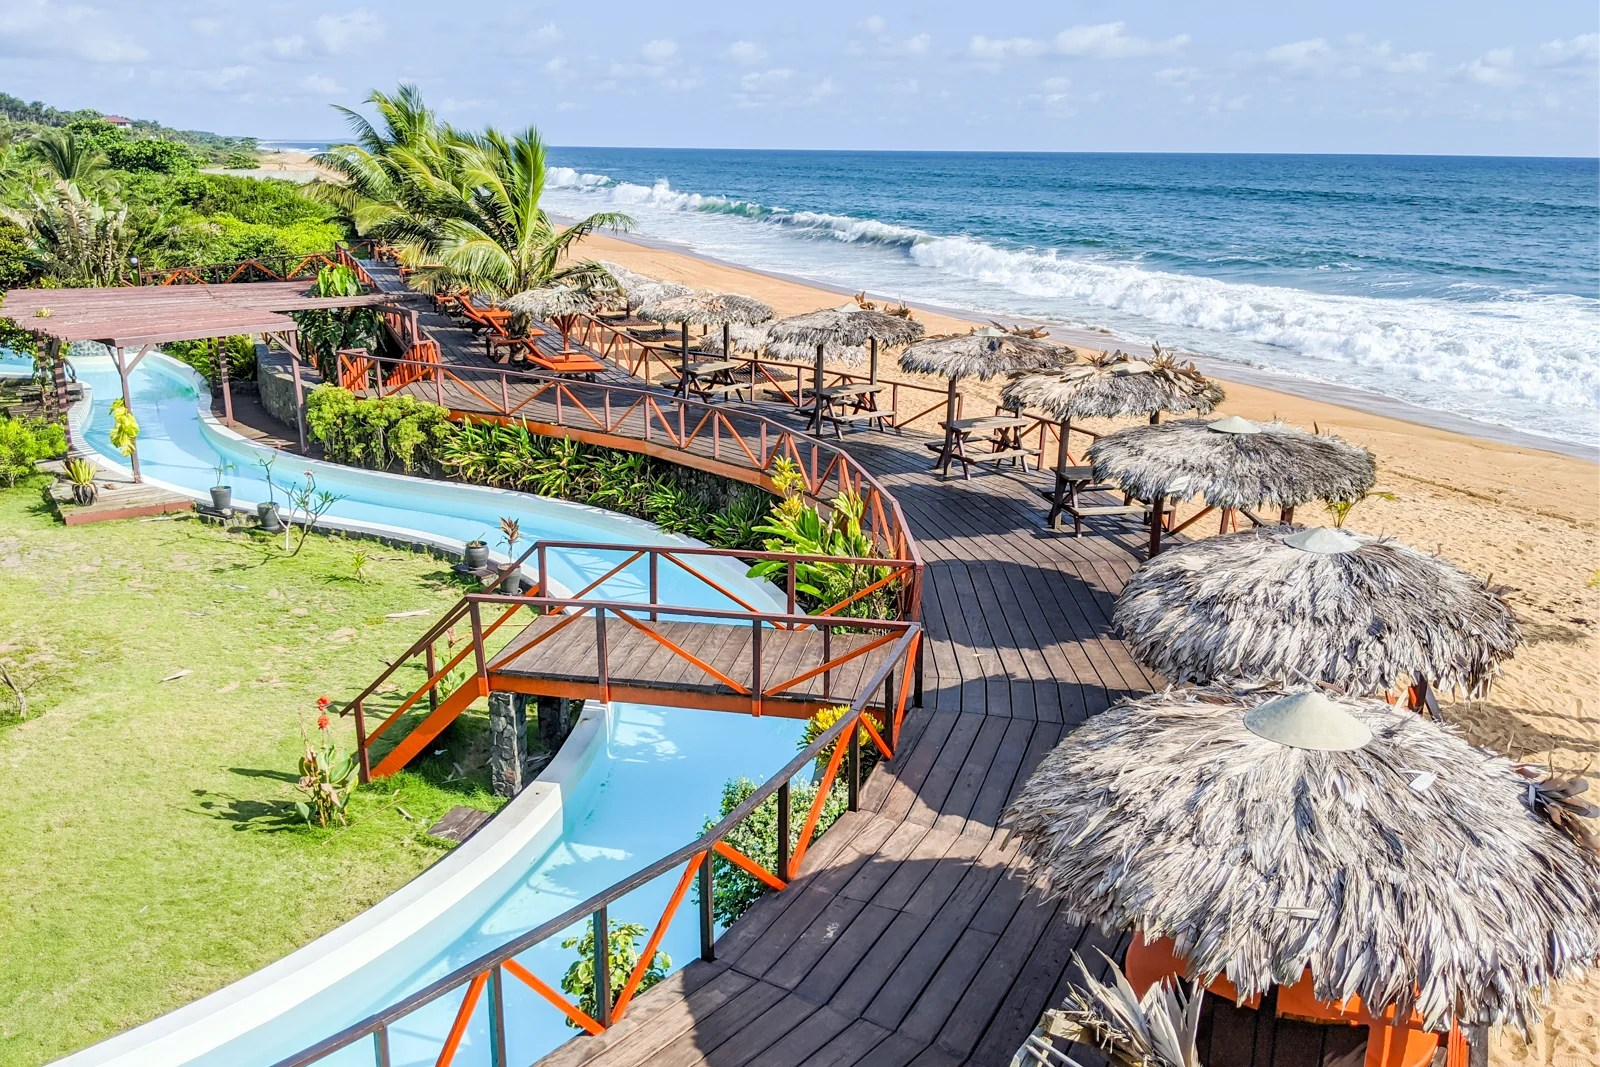 Convenient, relaxing and frustrating: Comparing three of the best hotels in Liberia